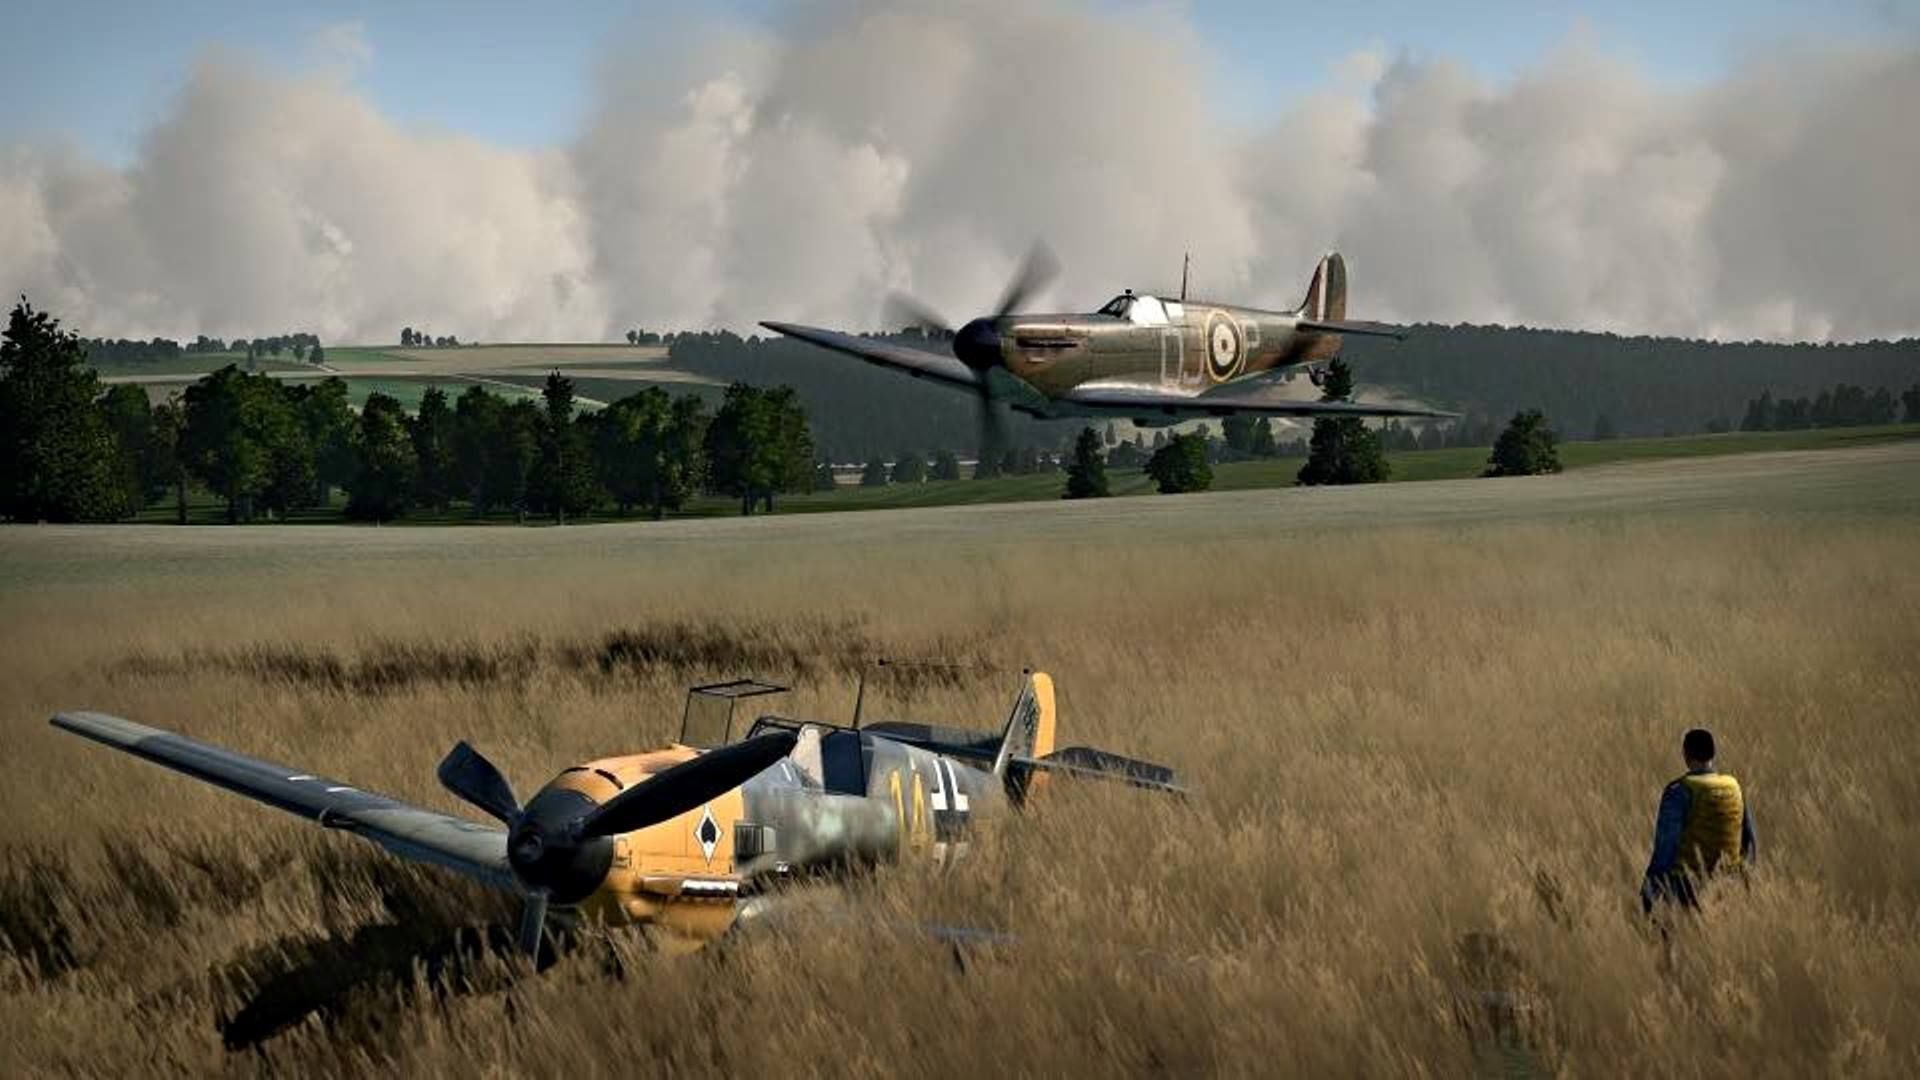 battle of britain in wwii Start studying wwii - battle of britain learn vocabulary, terms, and more with flashcards, games, and other study tools.